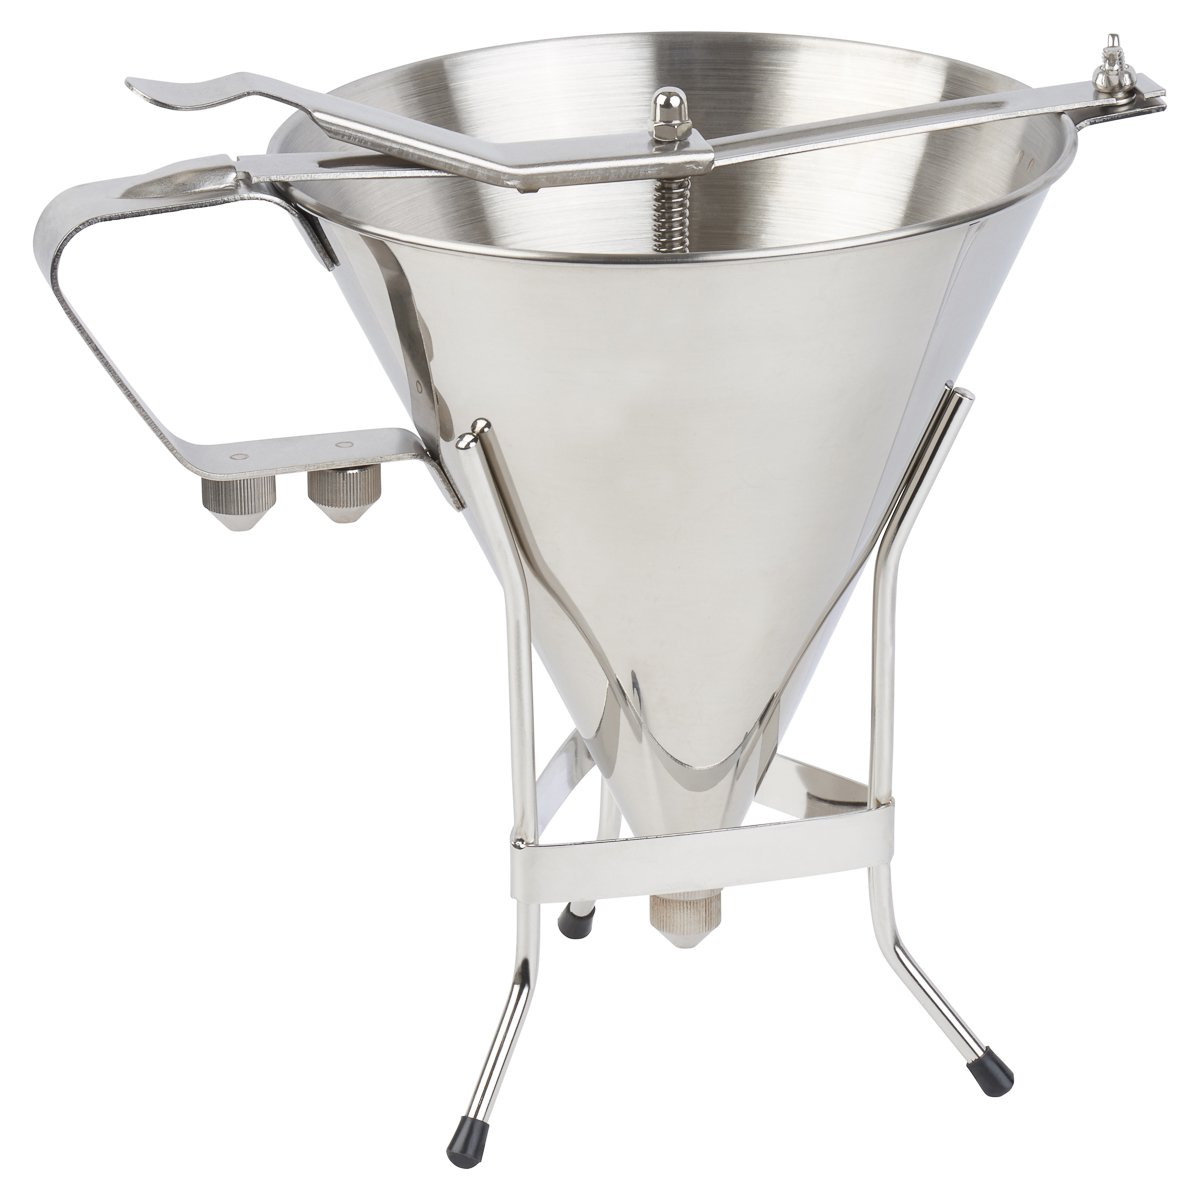 The #1 Professional Confectionery FUNNEL sturdy STAND with 3 NOZZLES Every chefs best friend- By The Kitchen Panda CF01 Premium commercial quality stainless steel 7-1//2 inch Diameter